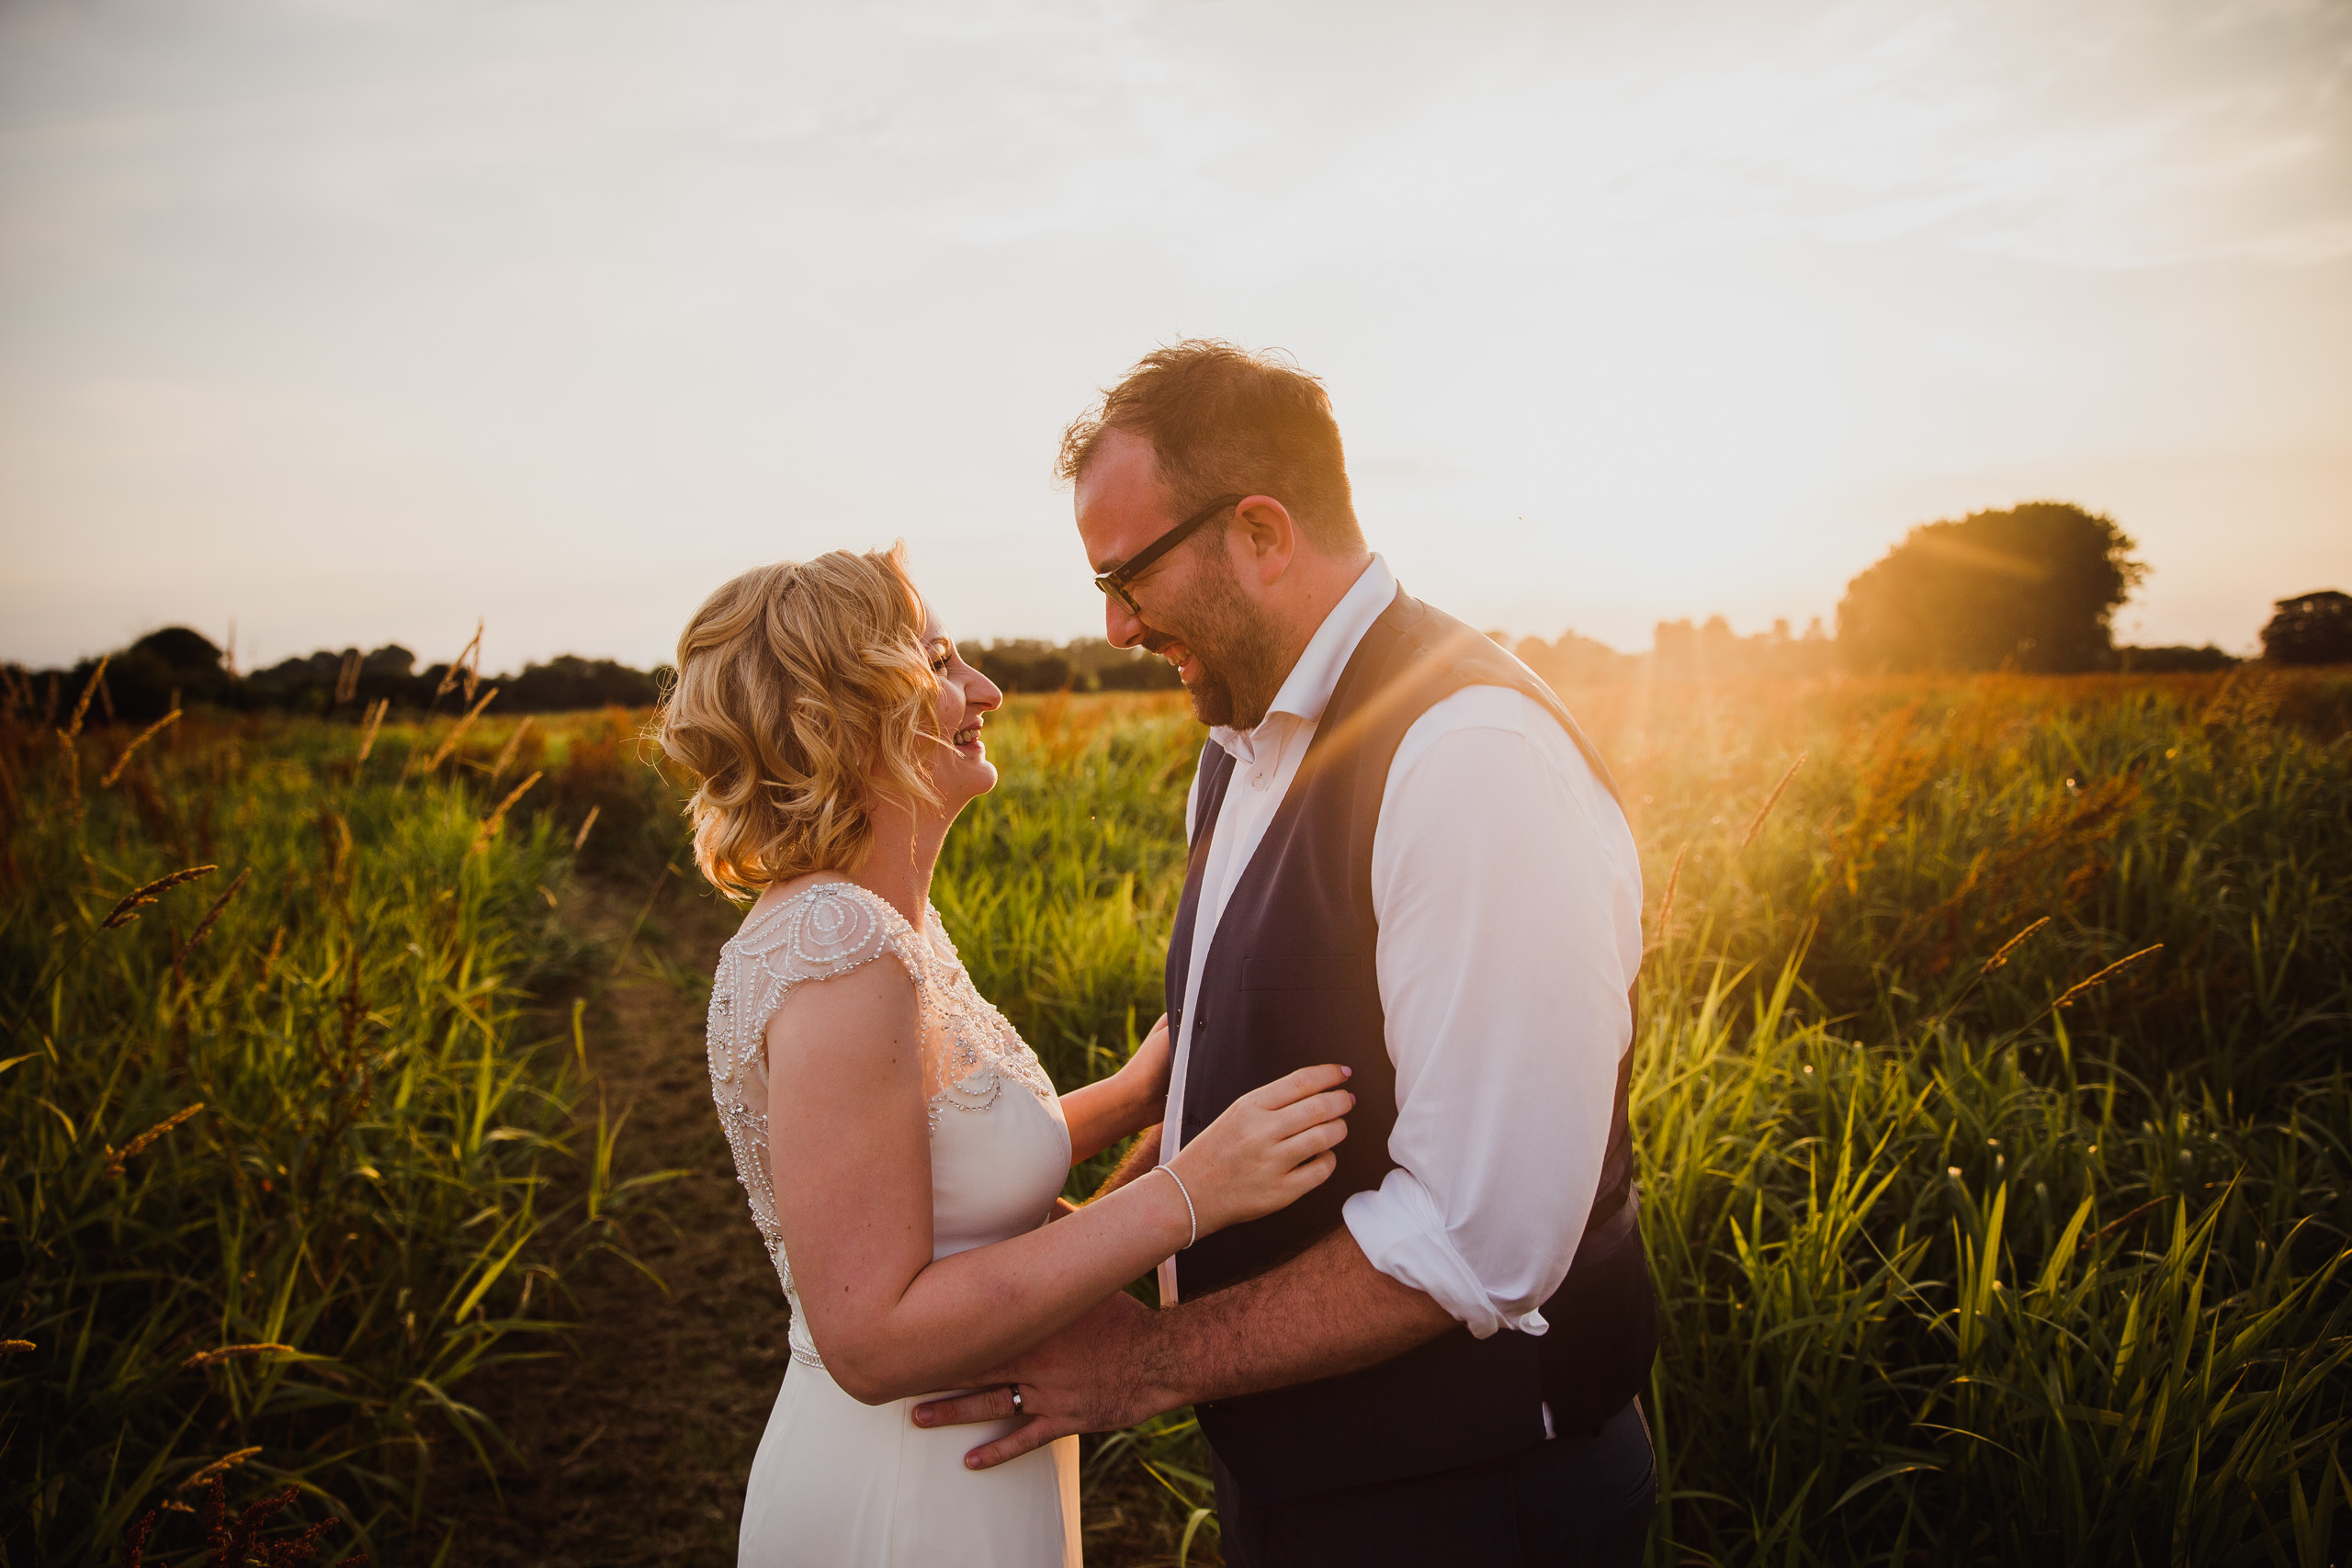 Bride and Groom portrait in the grounds of Hautbois Hall at sunset